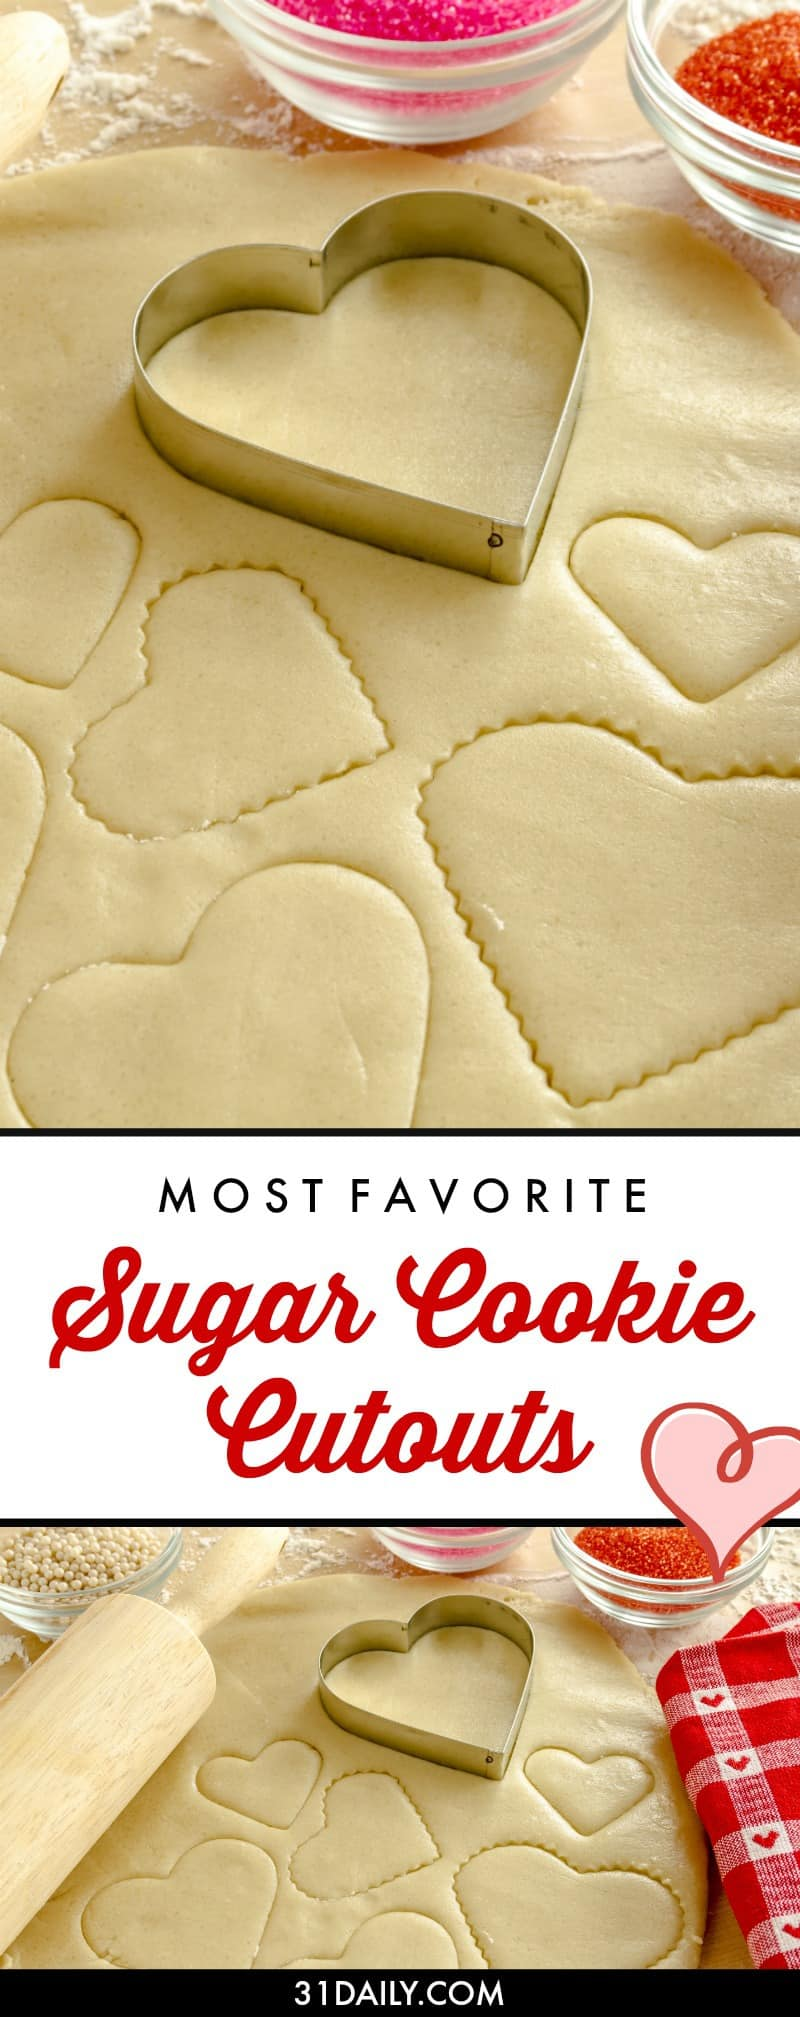 A Favorite Sugar Cookie Cutouts Recipe I Use Every Year | 31Daily.com